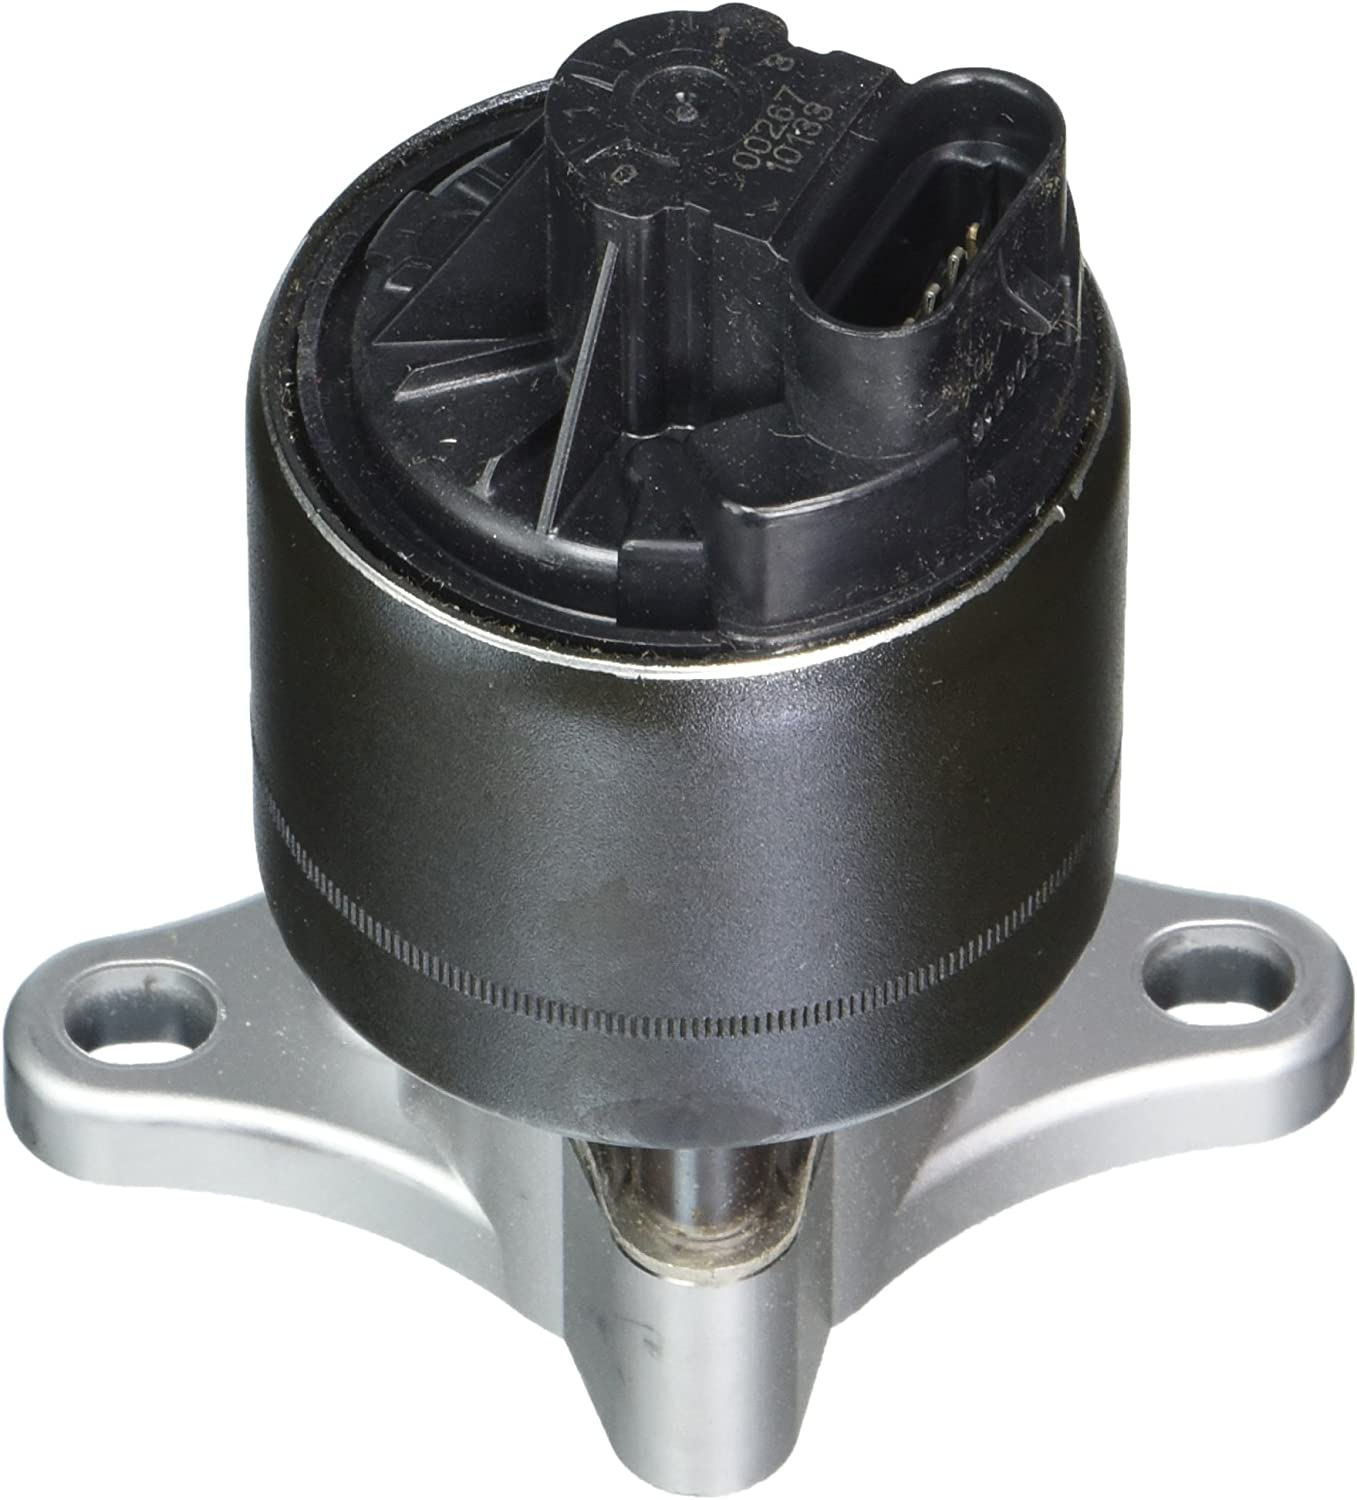 ACDelco GM Original All items in Seasonal Wrap Introduction the store Equipment EGR 214-5007 Valve